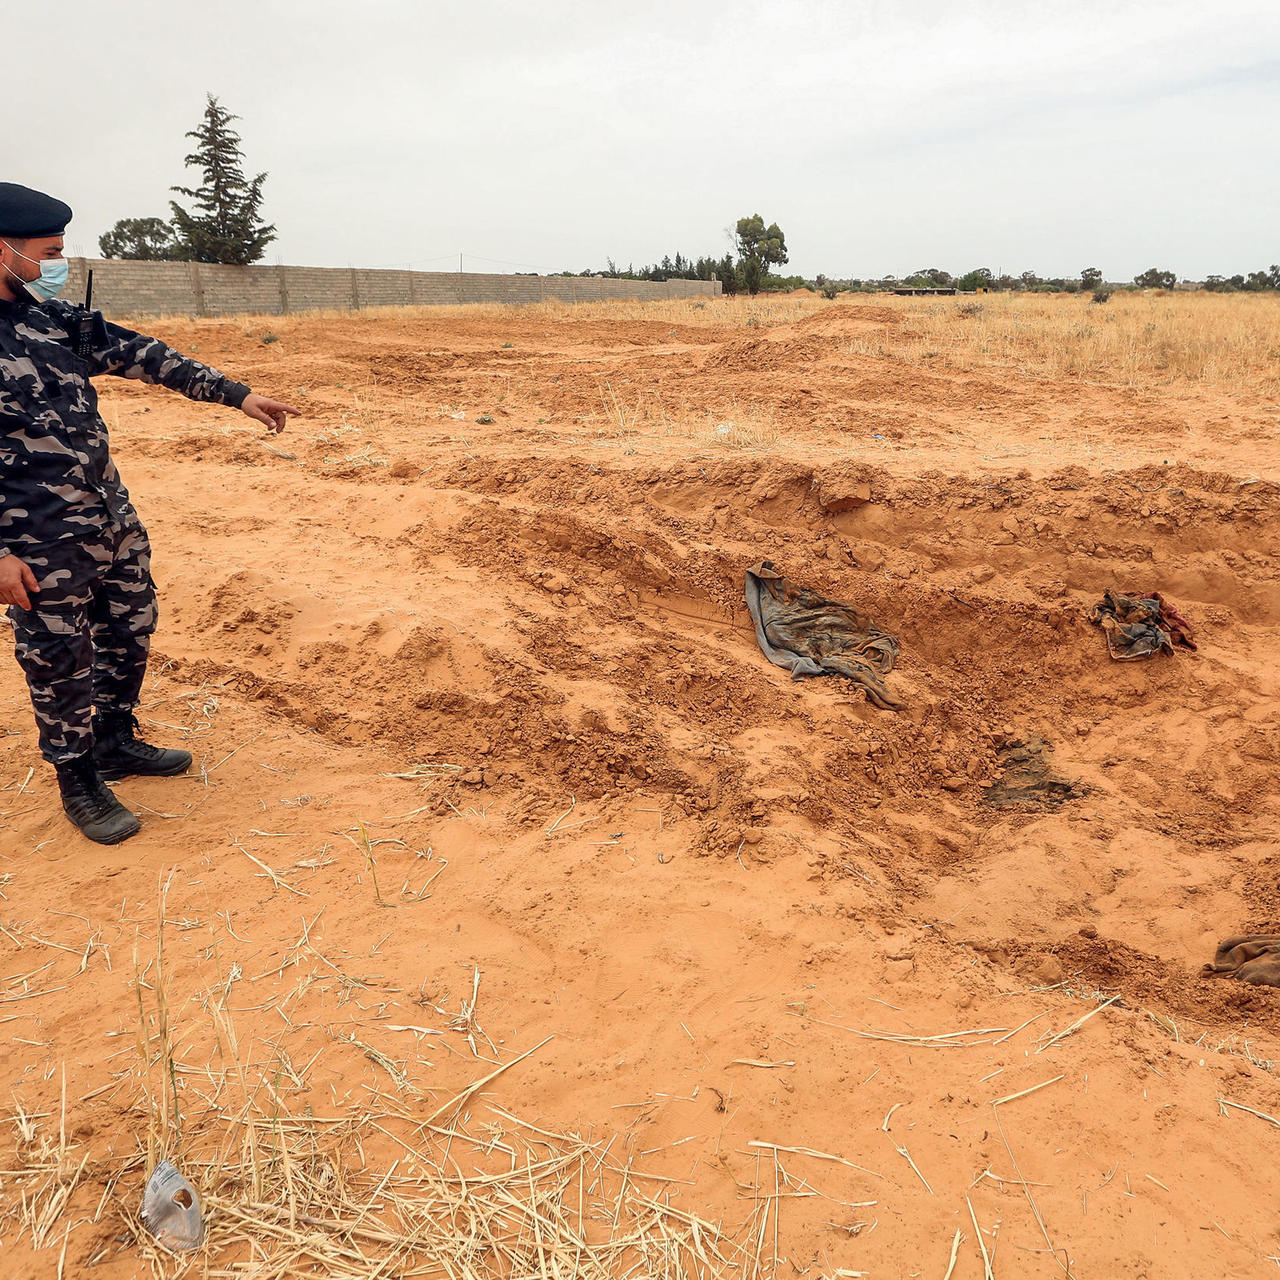 UN VOICES 'HORROR' AFTER REPORTS OF LIBYA MASS GRAVES